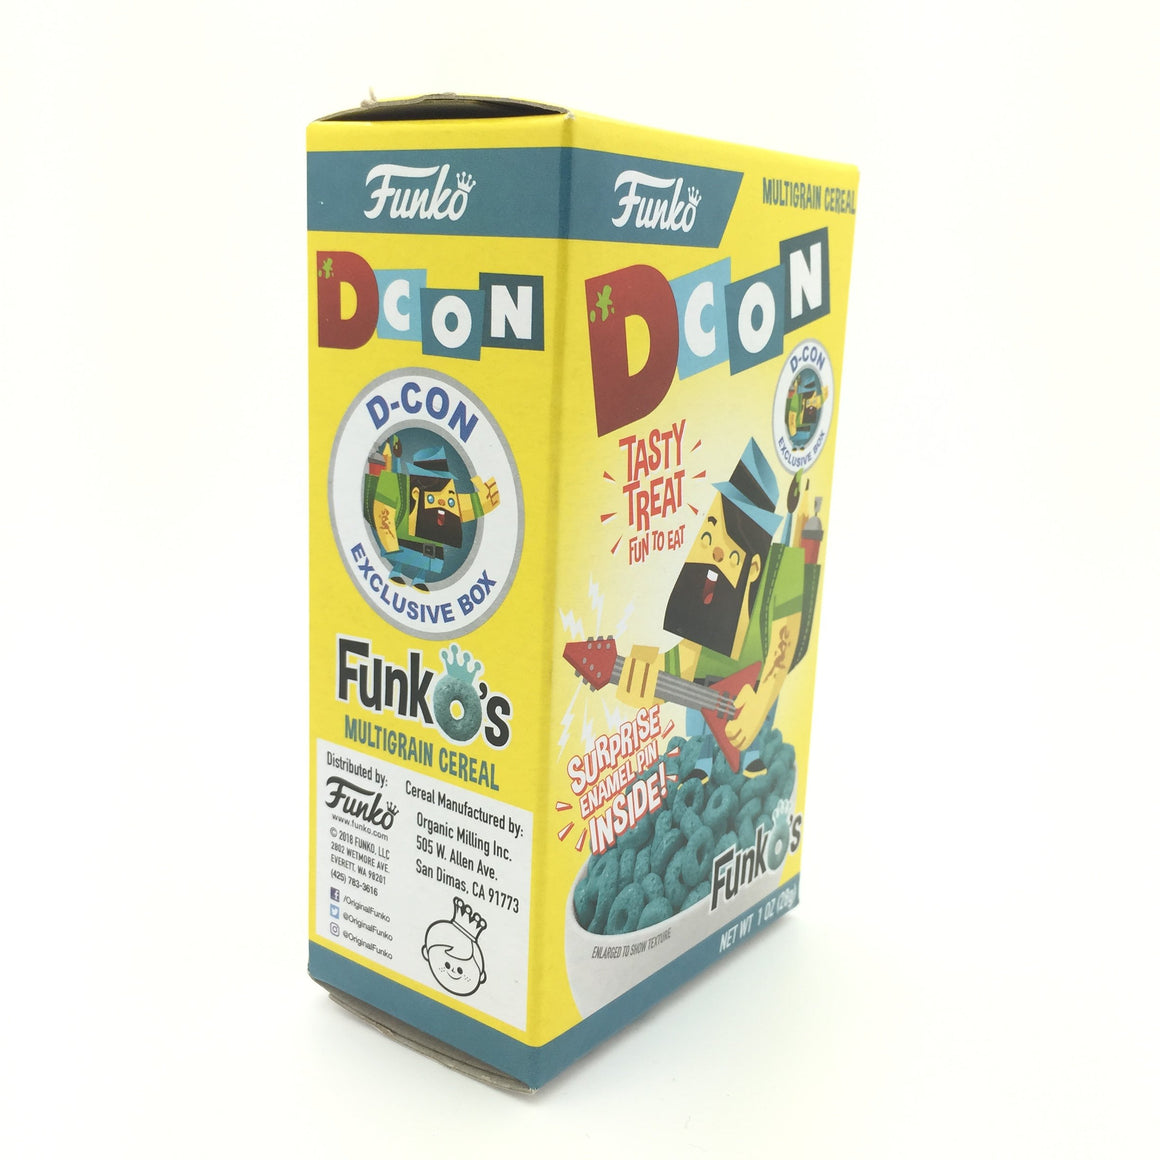 Designer Con FunkO's Exclusive Small Cereal Box with Surprise Enamel Pin